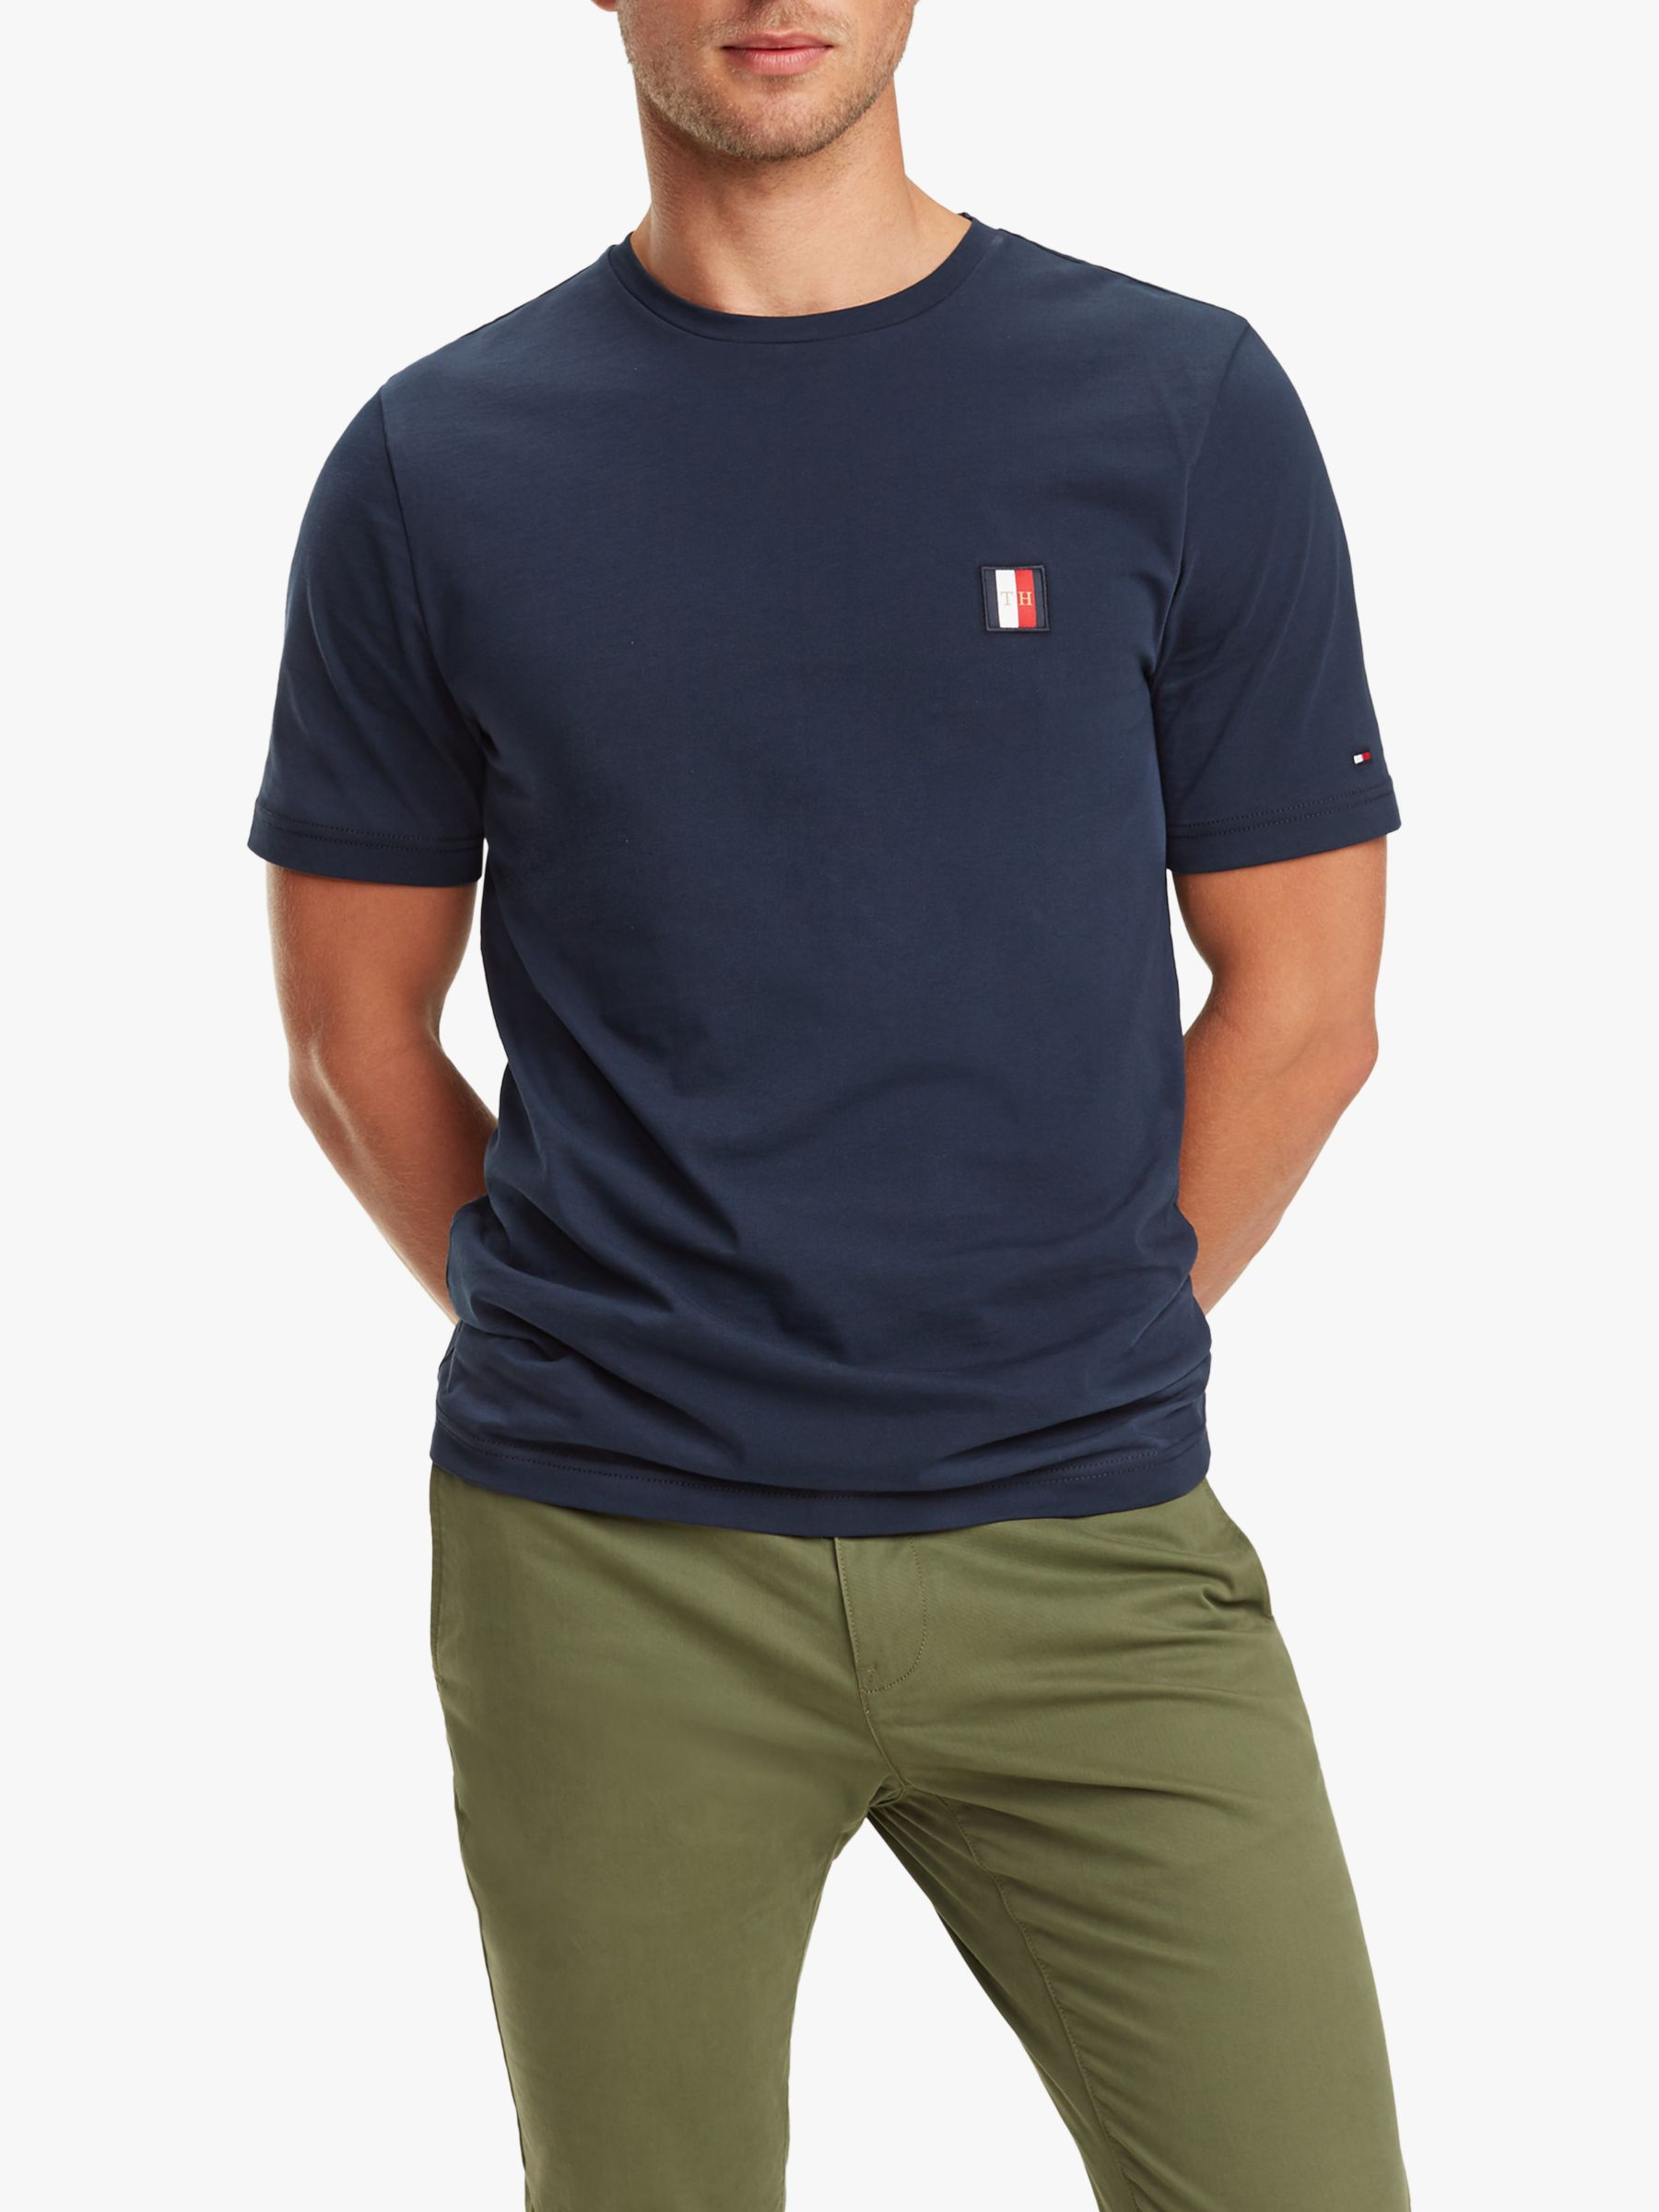 Tommy Hilfiger Floral Flag Printed Cotton T Shirt & Reviews